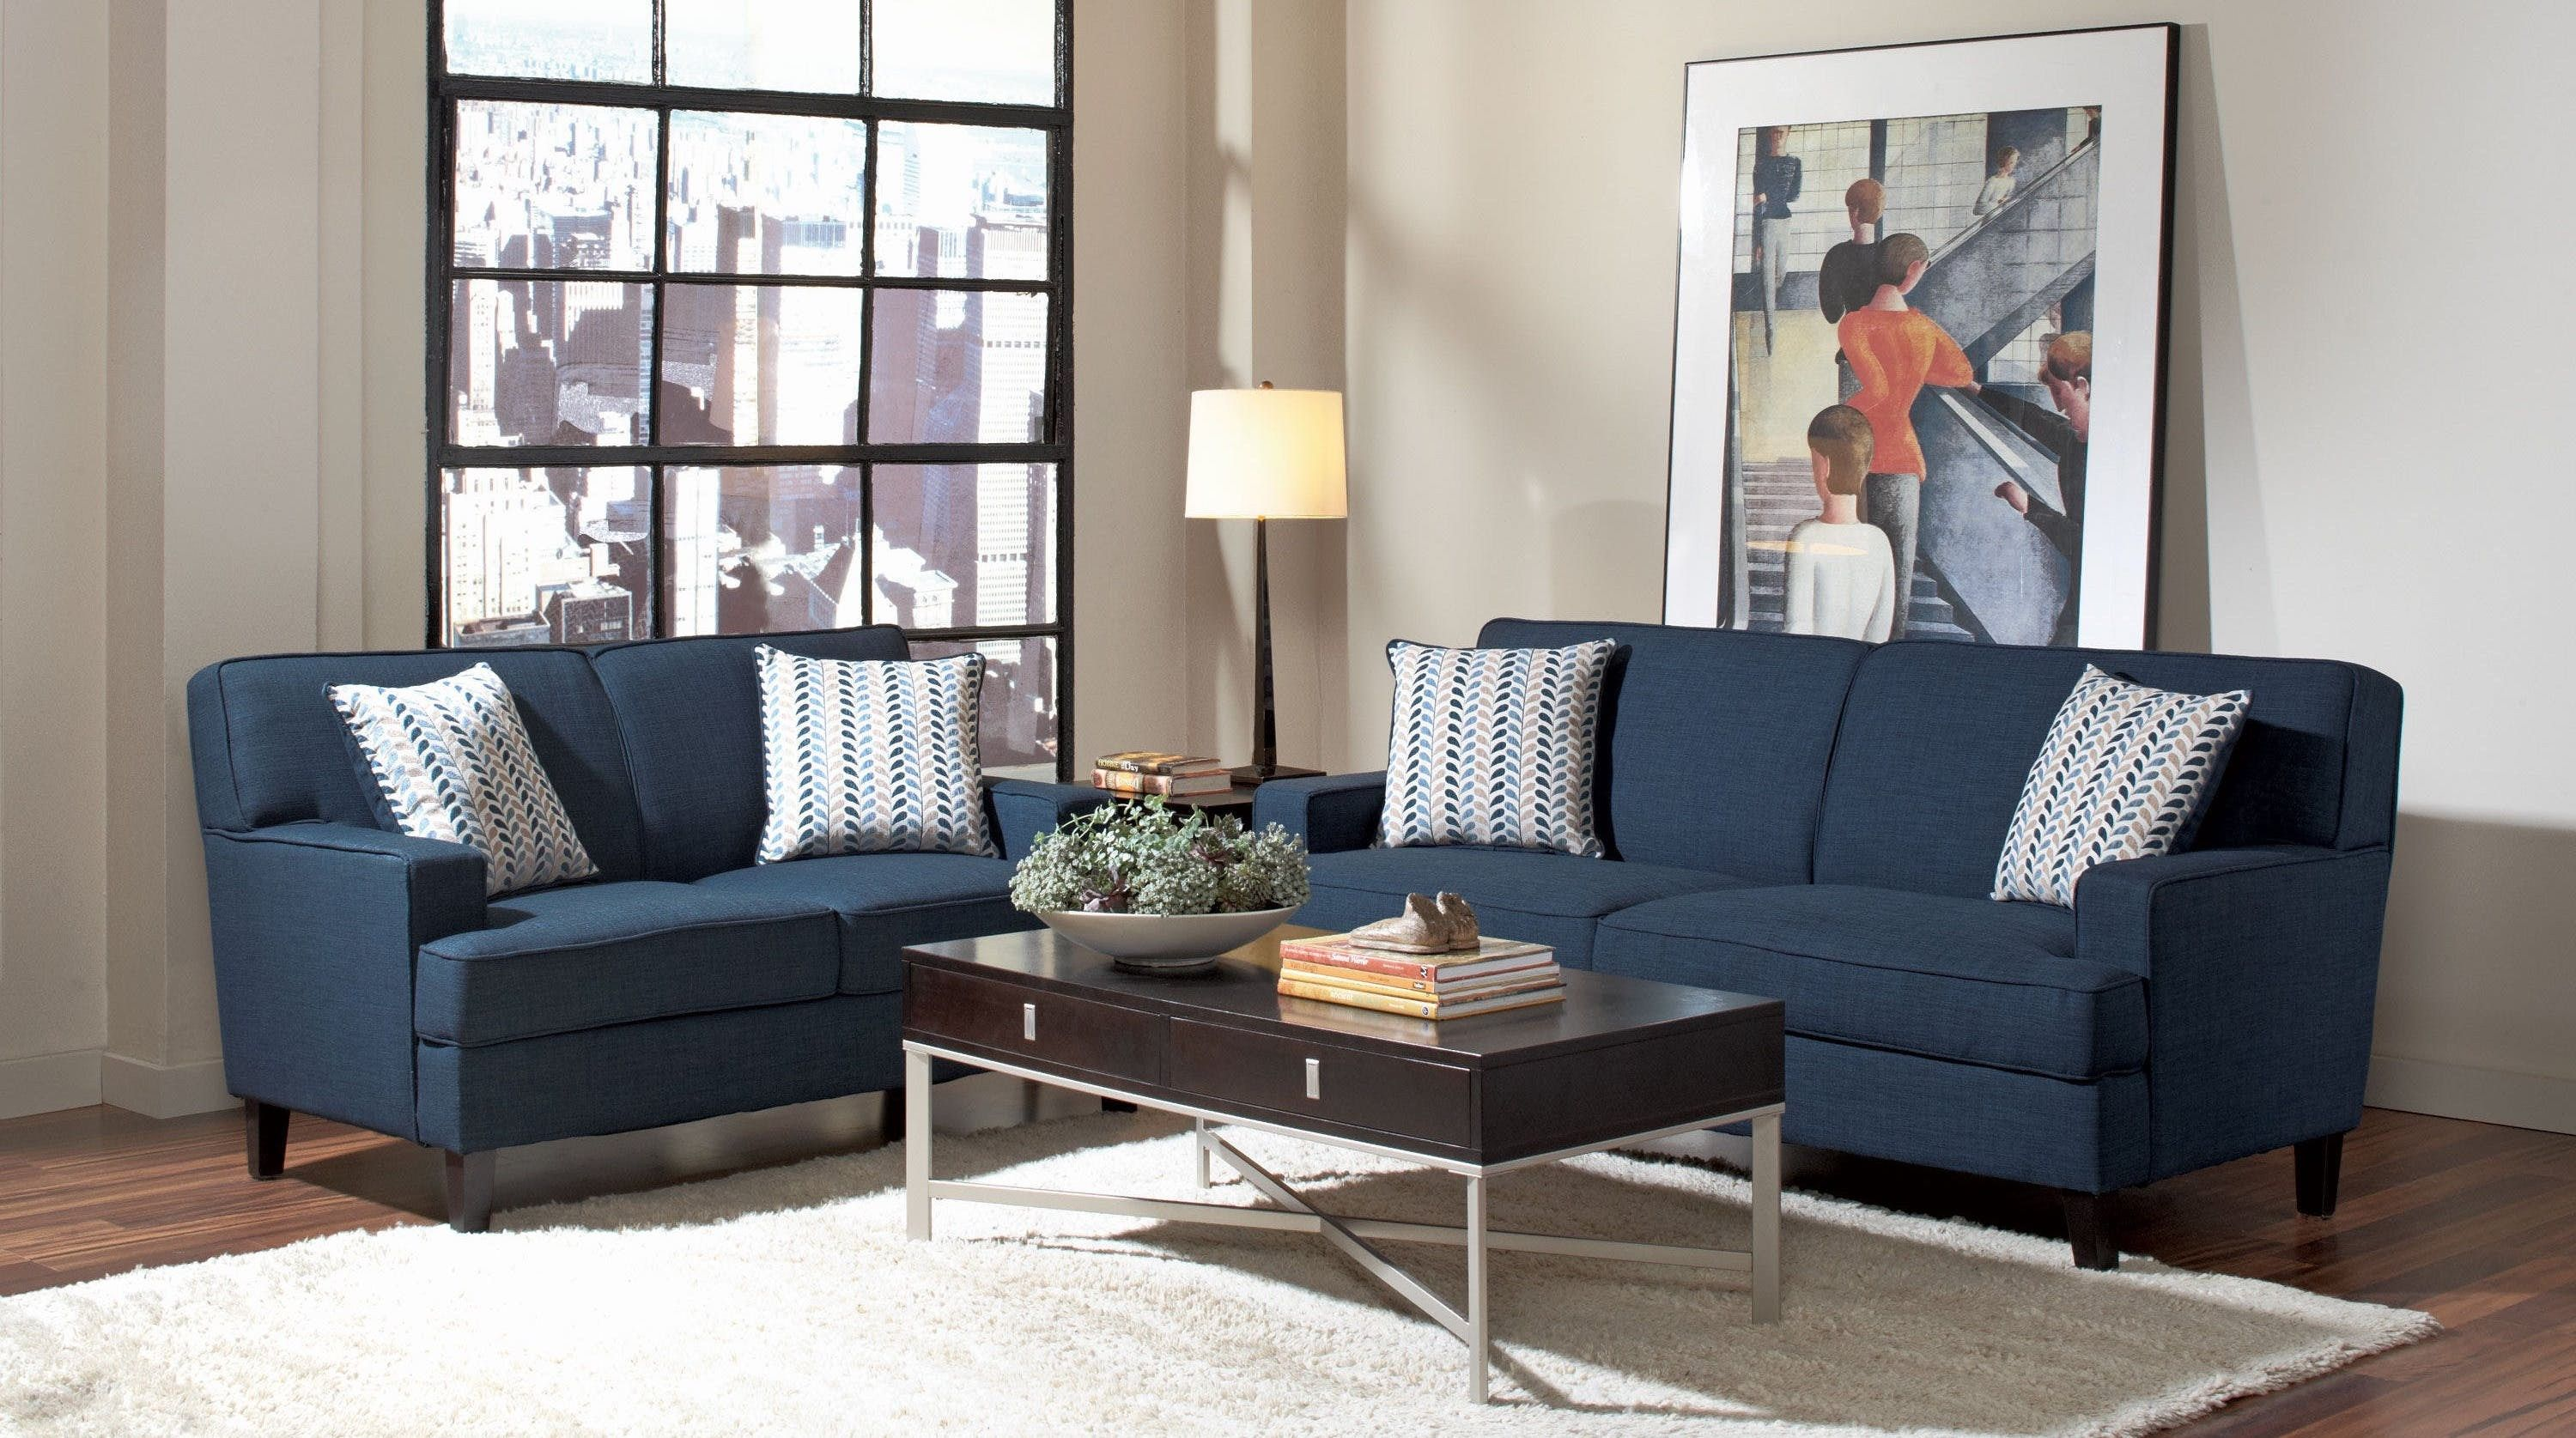 15 Some Of The Coolest Designs Of How To Upgrade Finance Living Room Set Di 2020